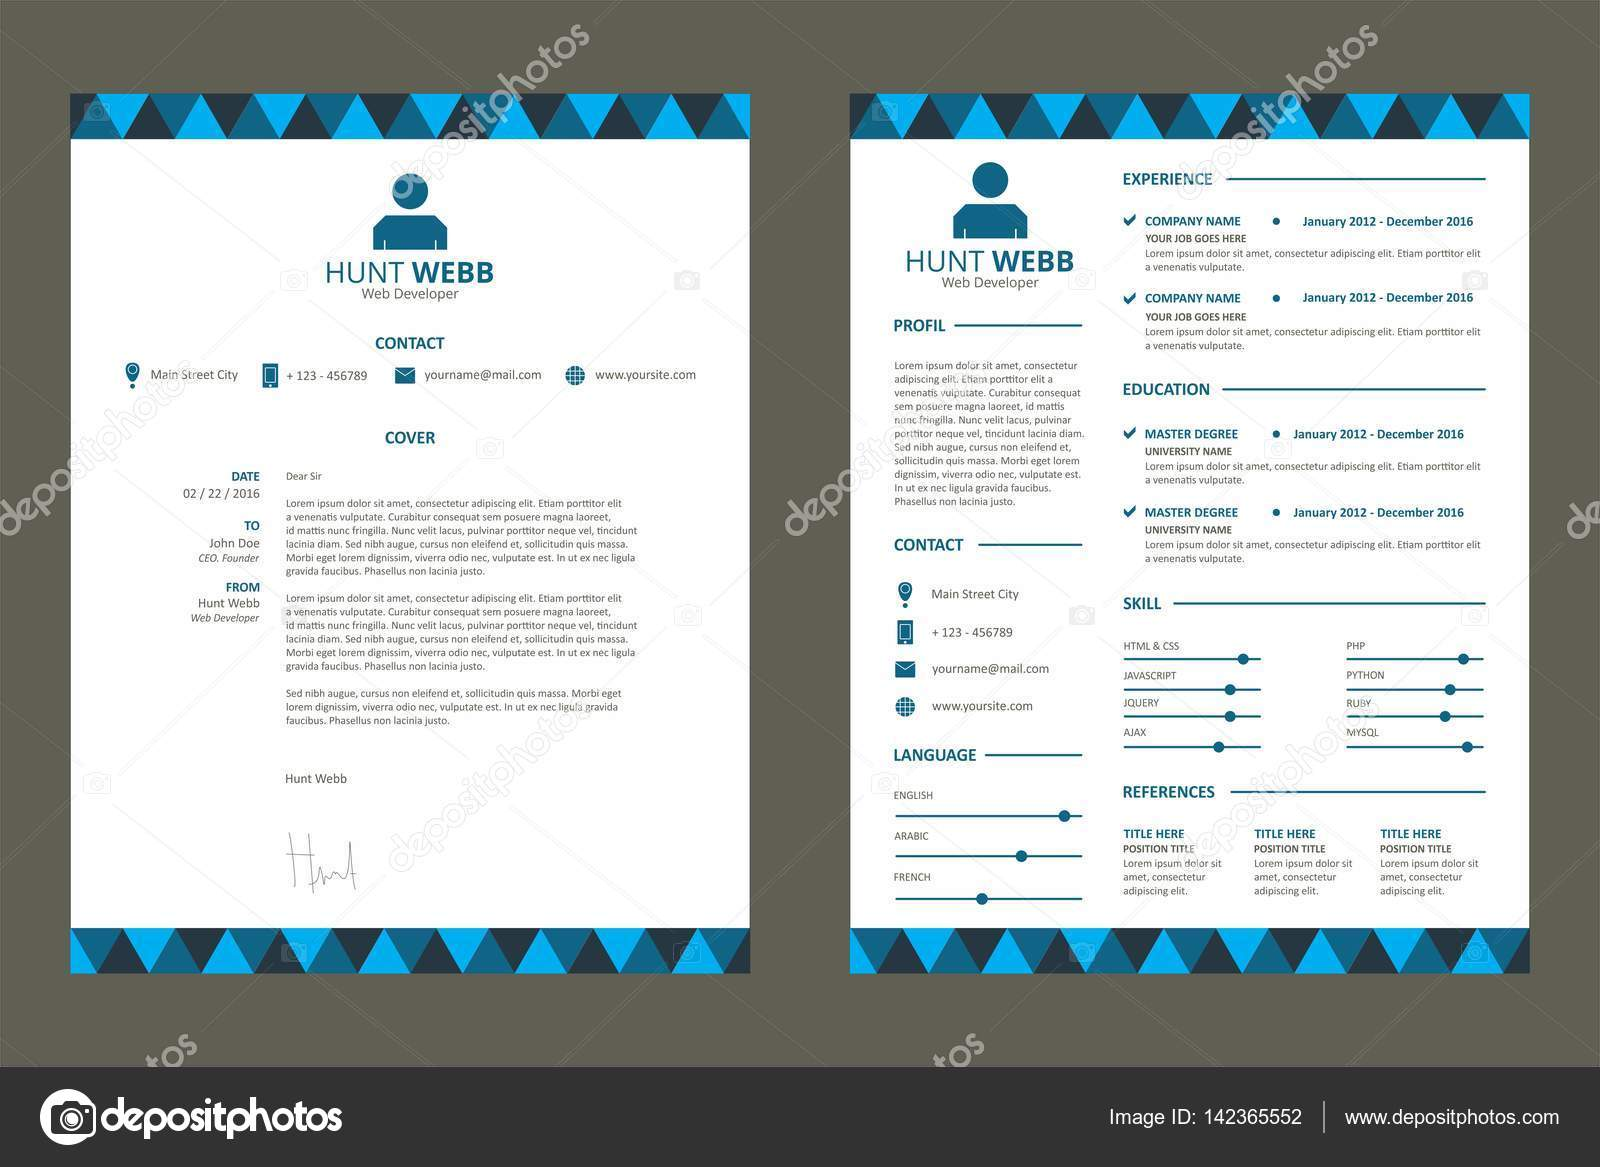 cv curriculum vitae resume blue color pattern vector by hendramaroongmailcom